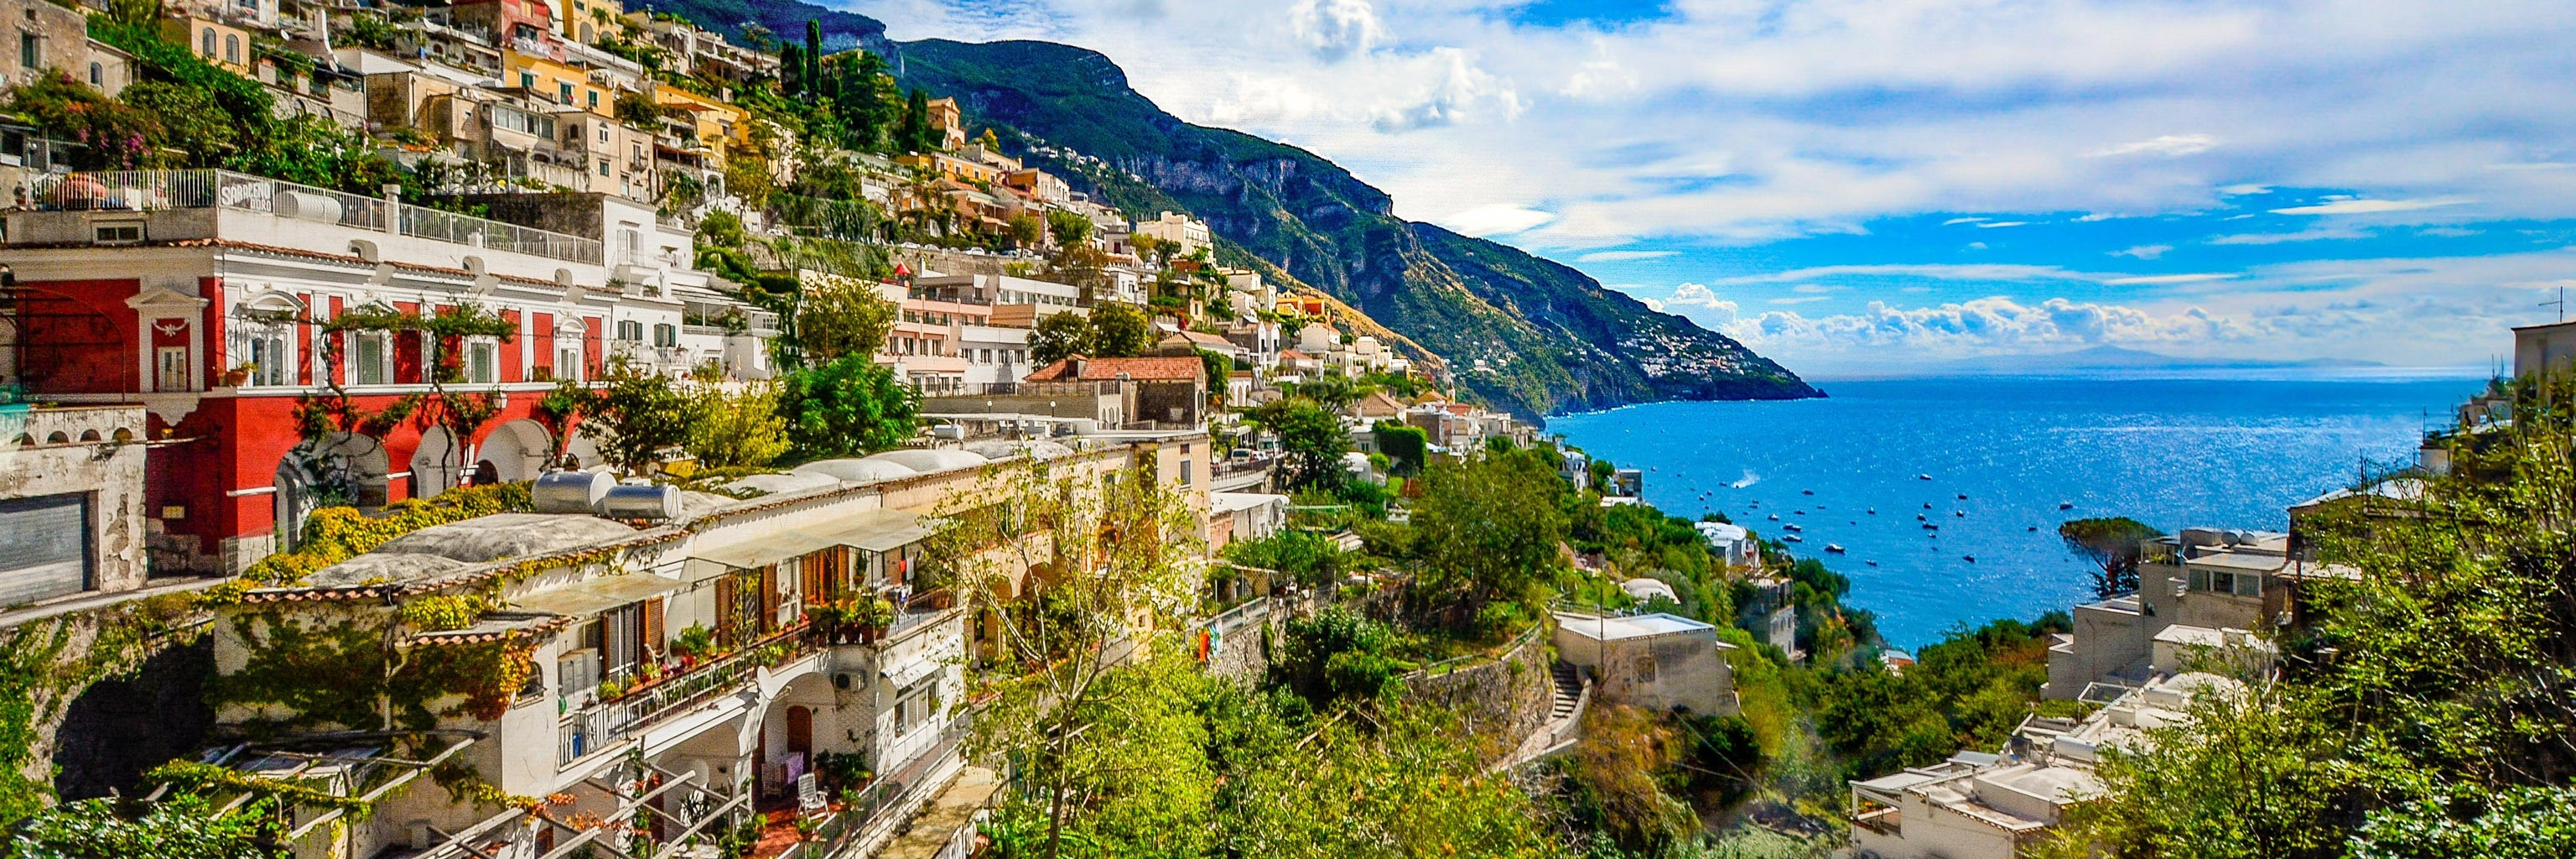 A colorful picture of the houses in Amalfi by the sea in Salerno, Italy.